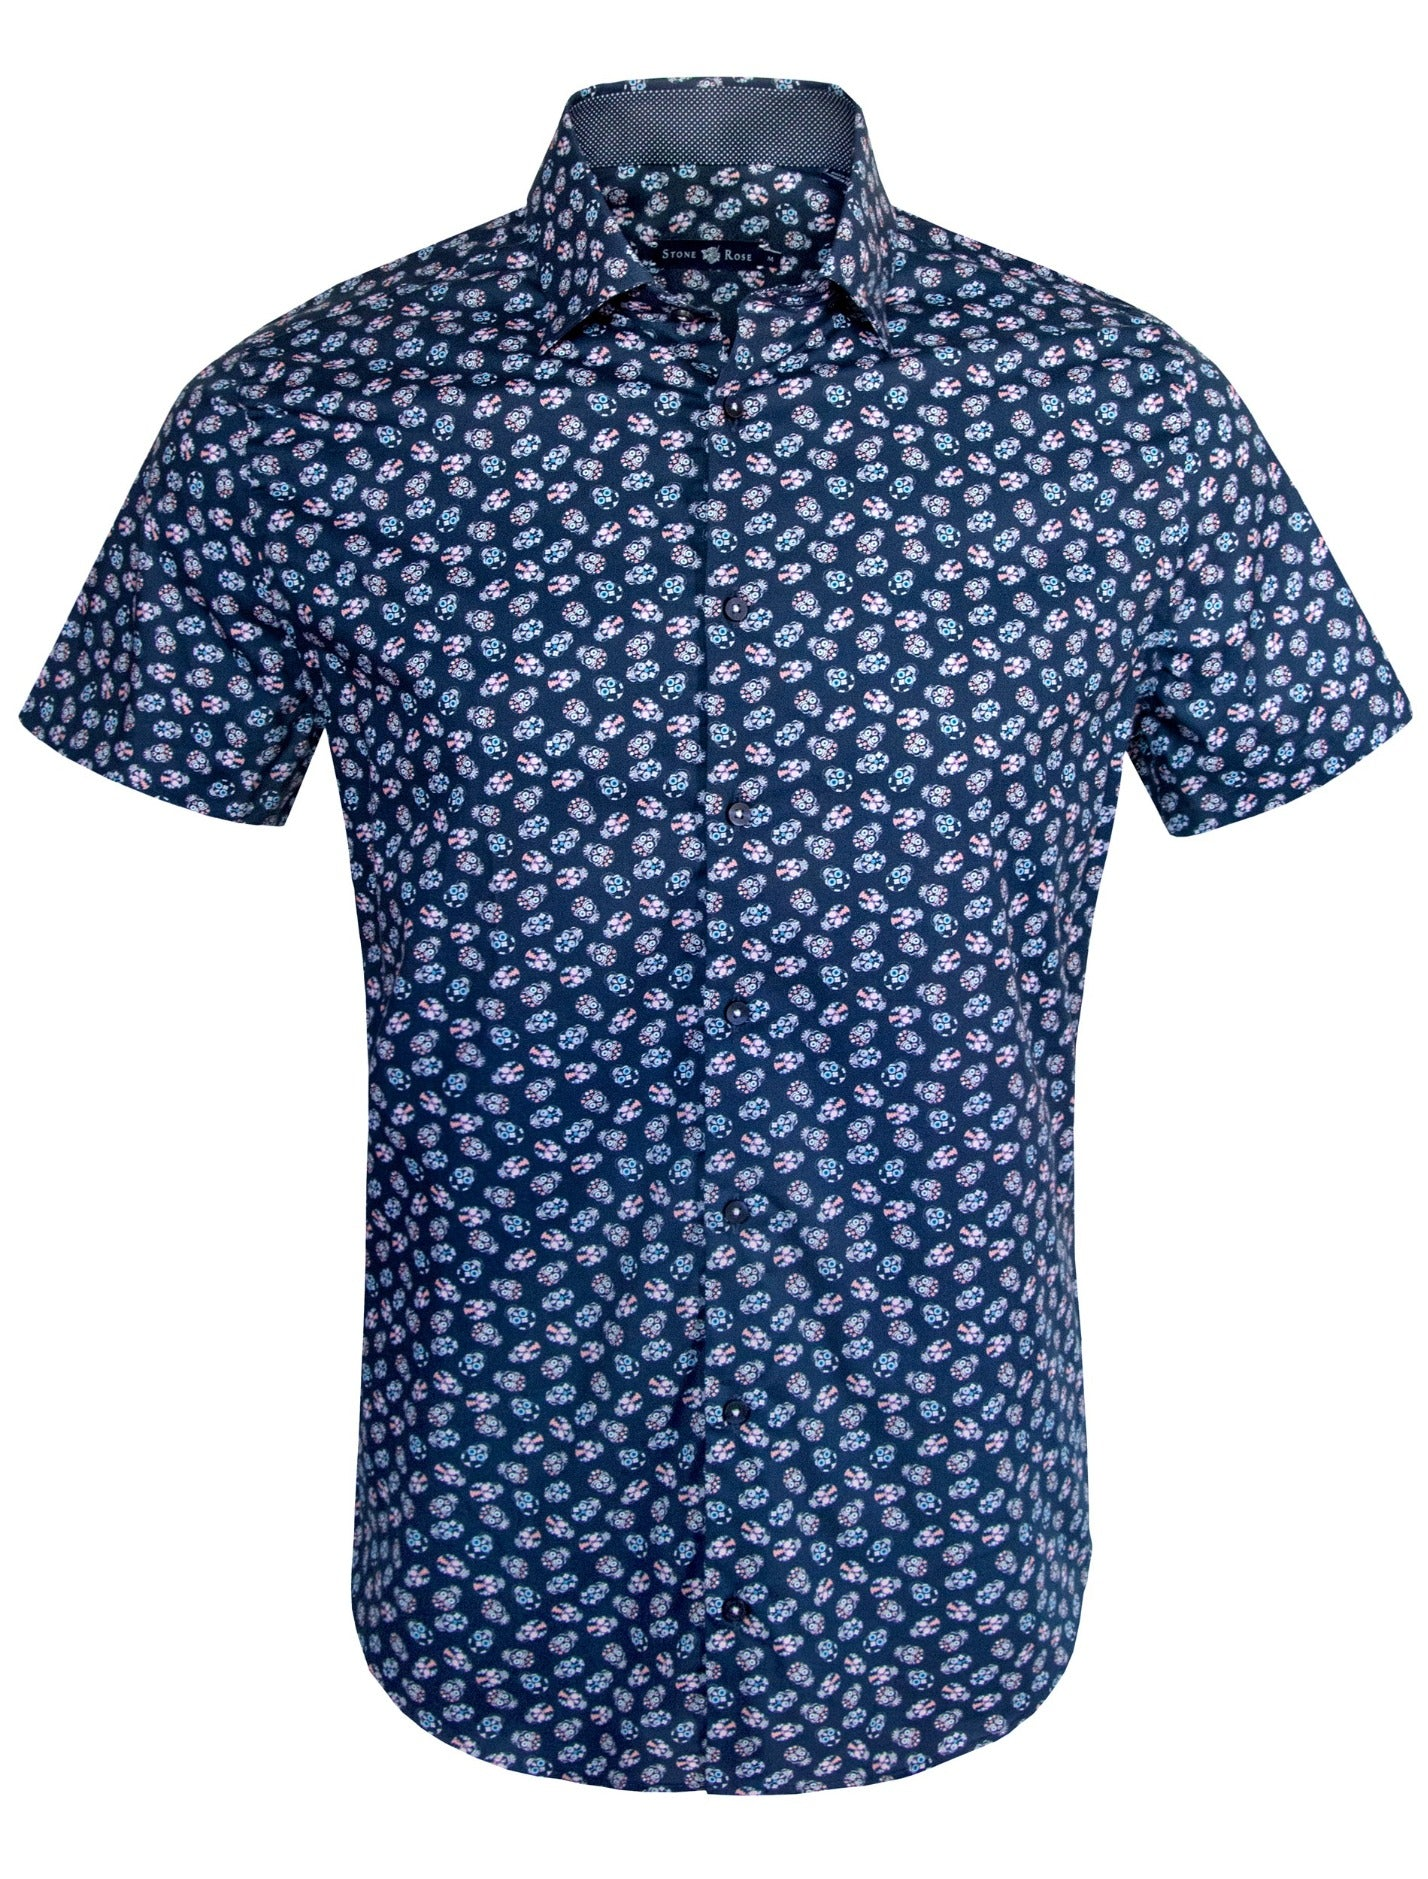 Navy Skull Print Short Sleeve Shirt